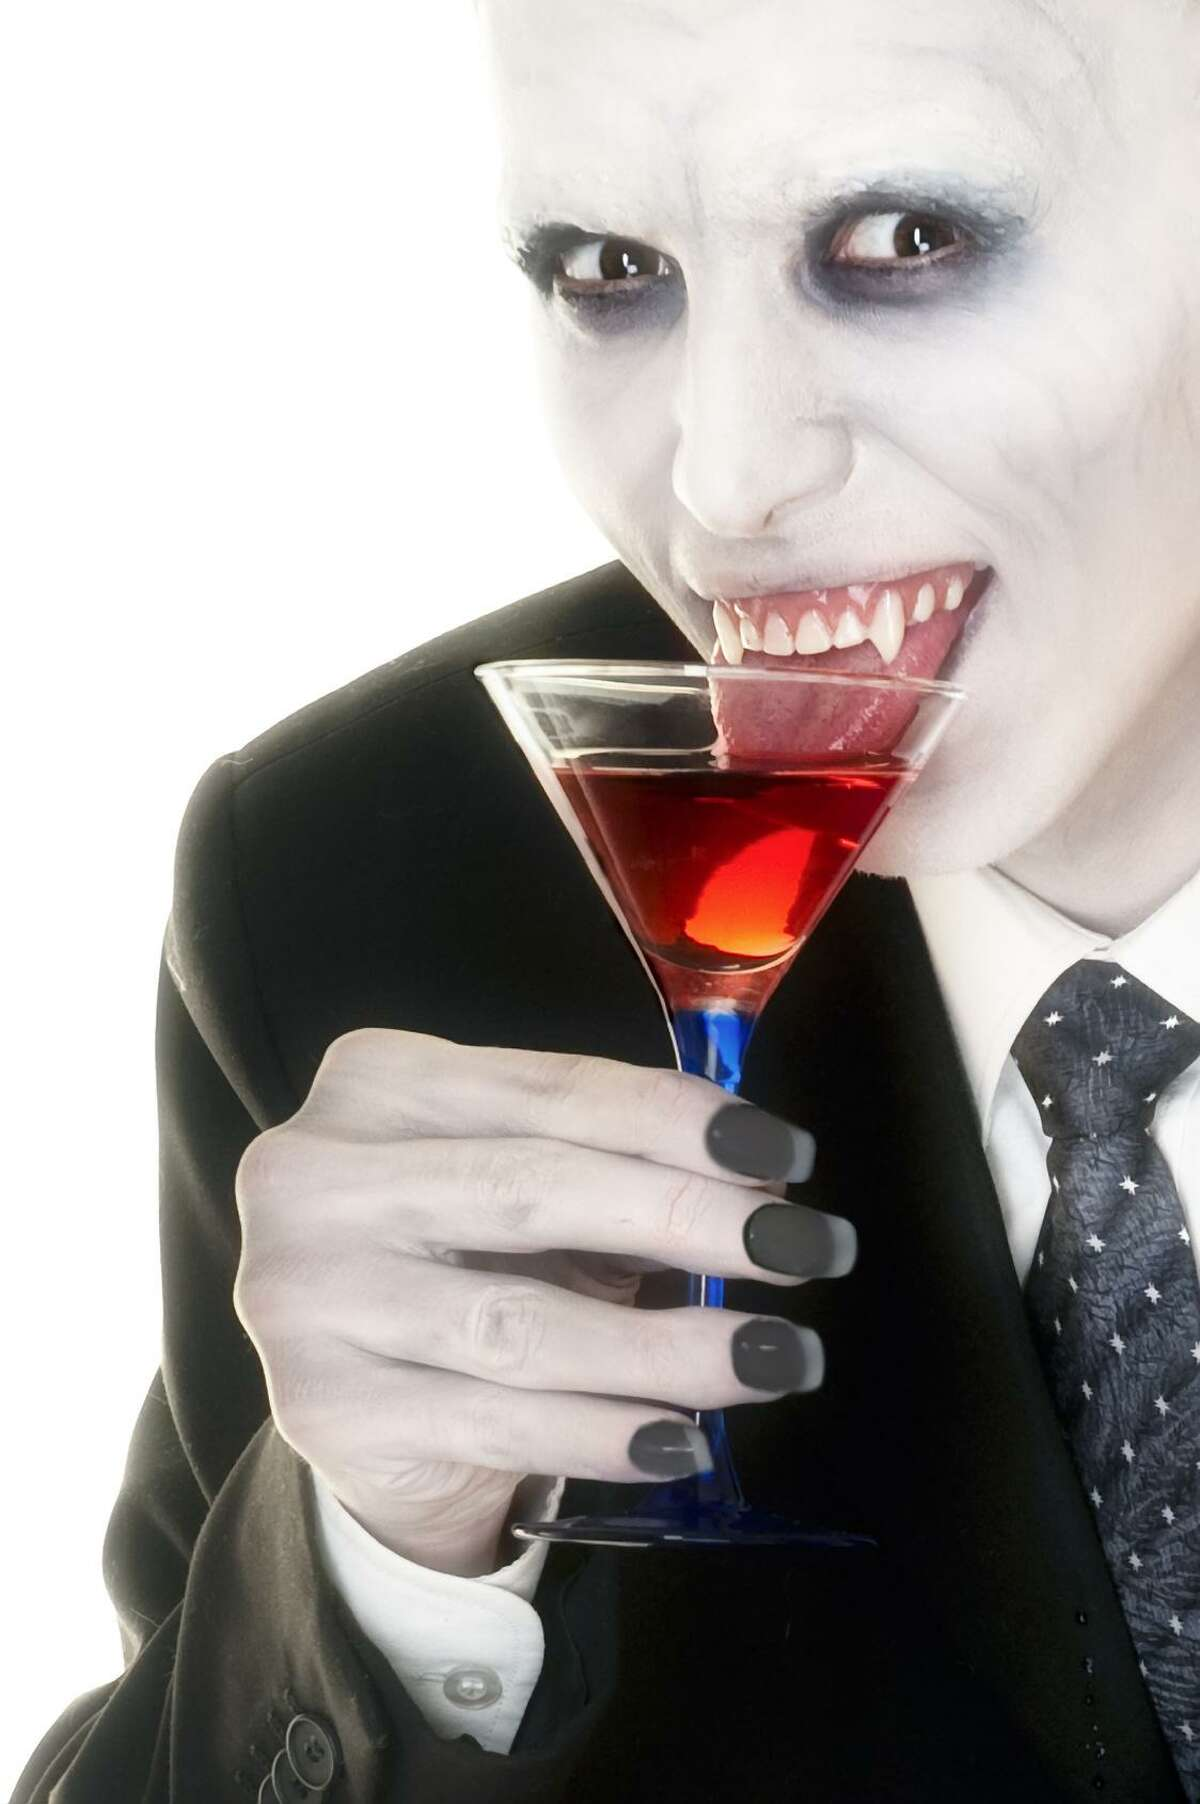 """Legal fights have erupted over the commercial use of """"vampiro"""" - the Spanish word for vampire - in San Antonio federal court and eleswhere."""